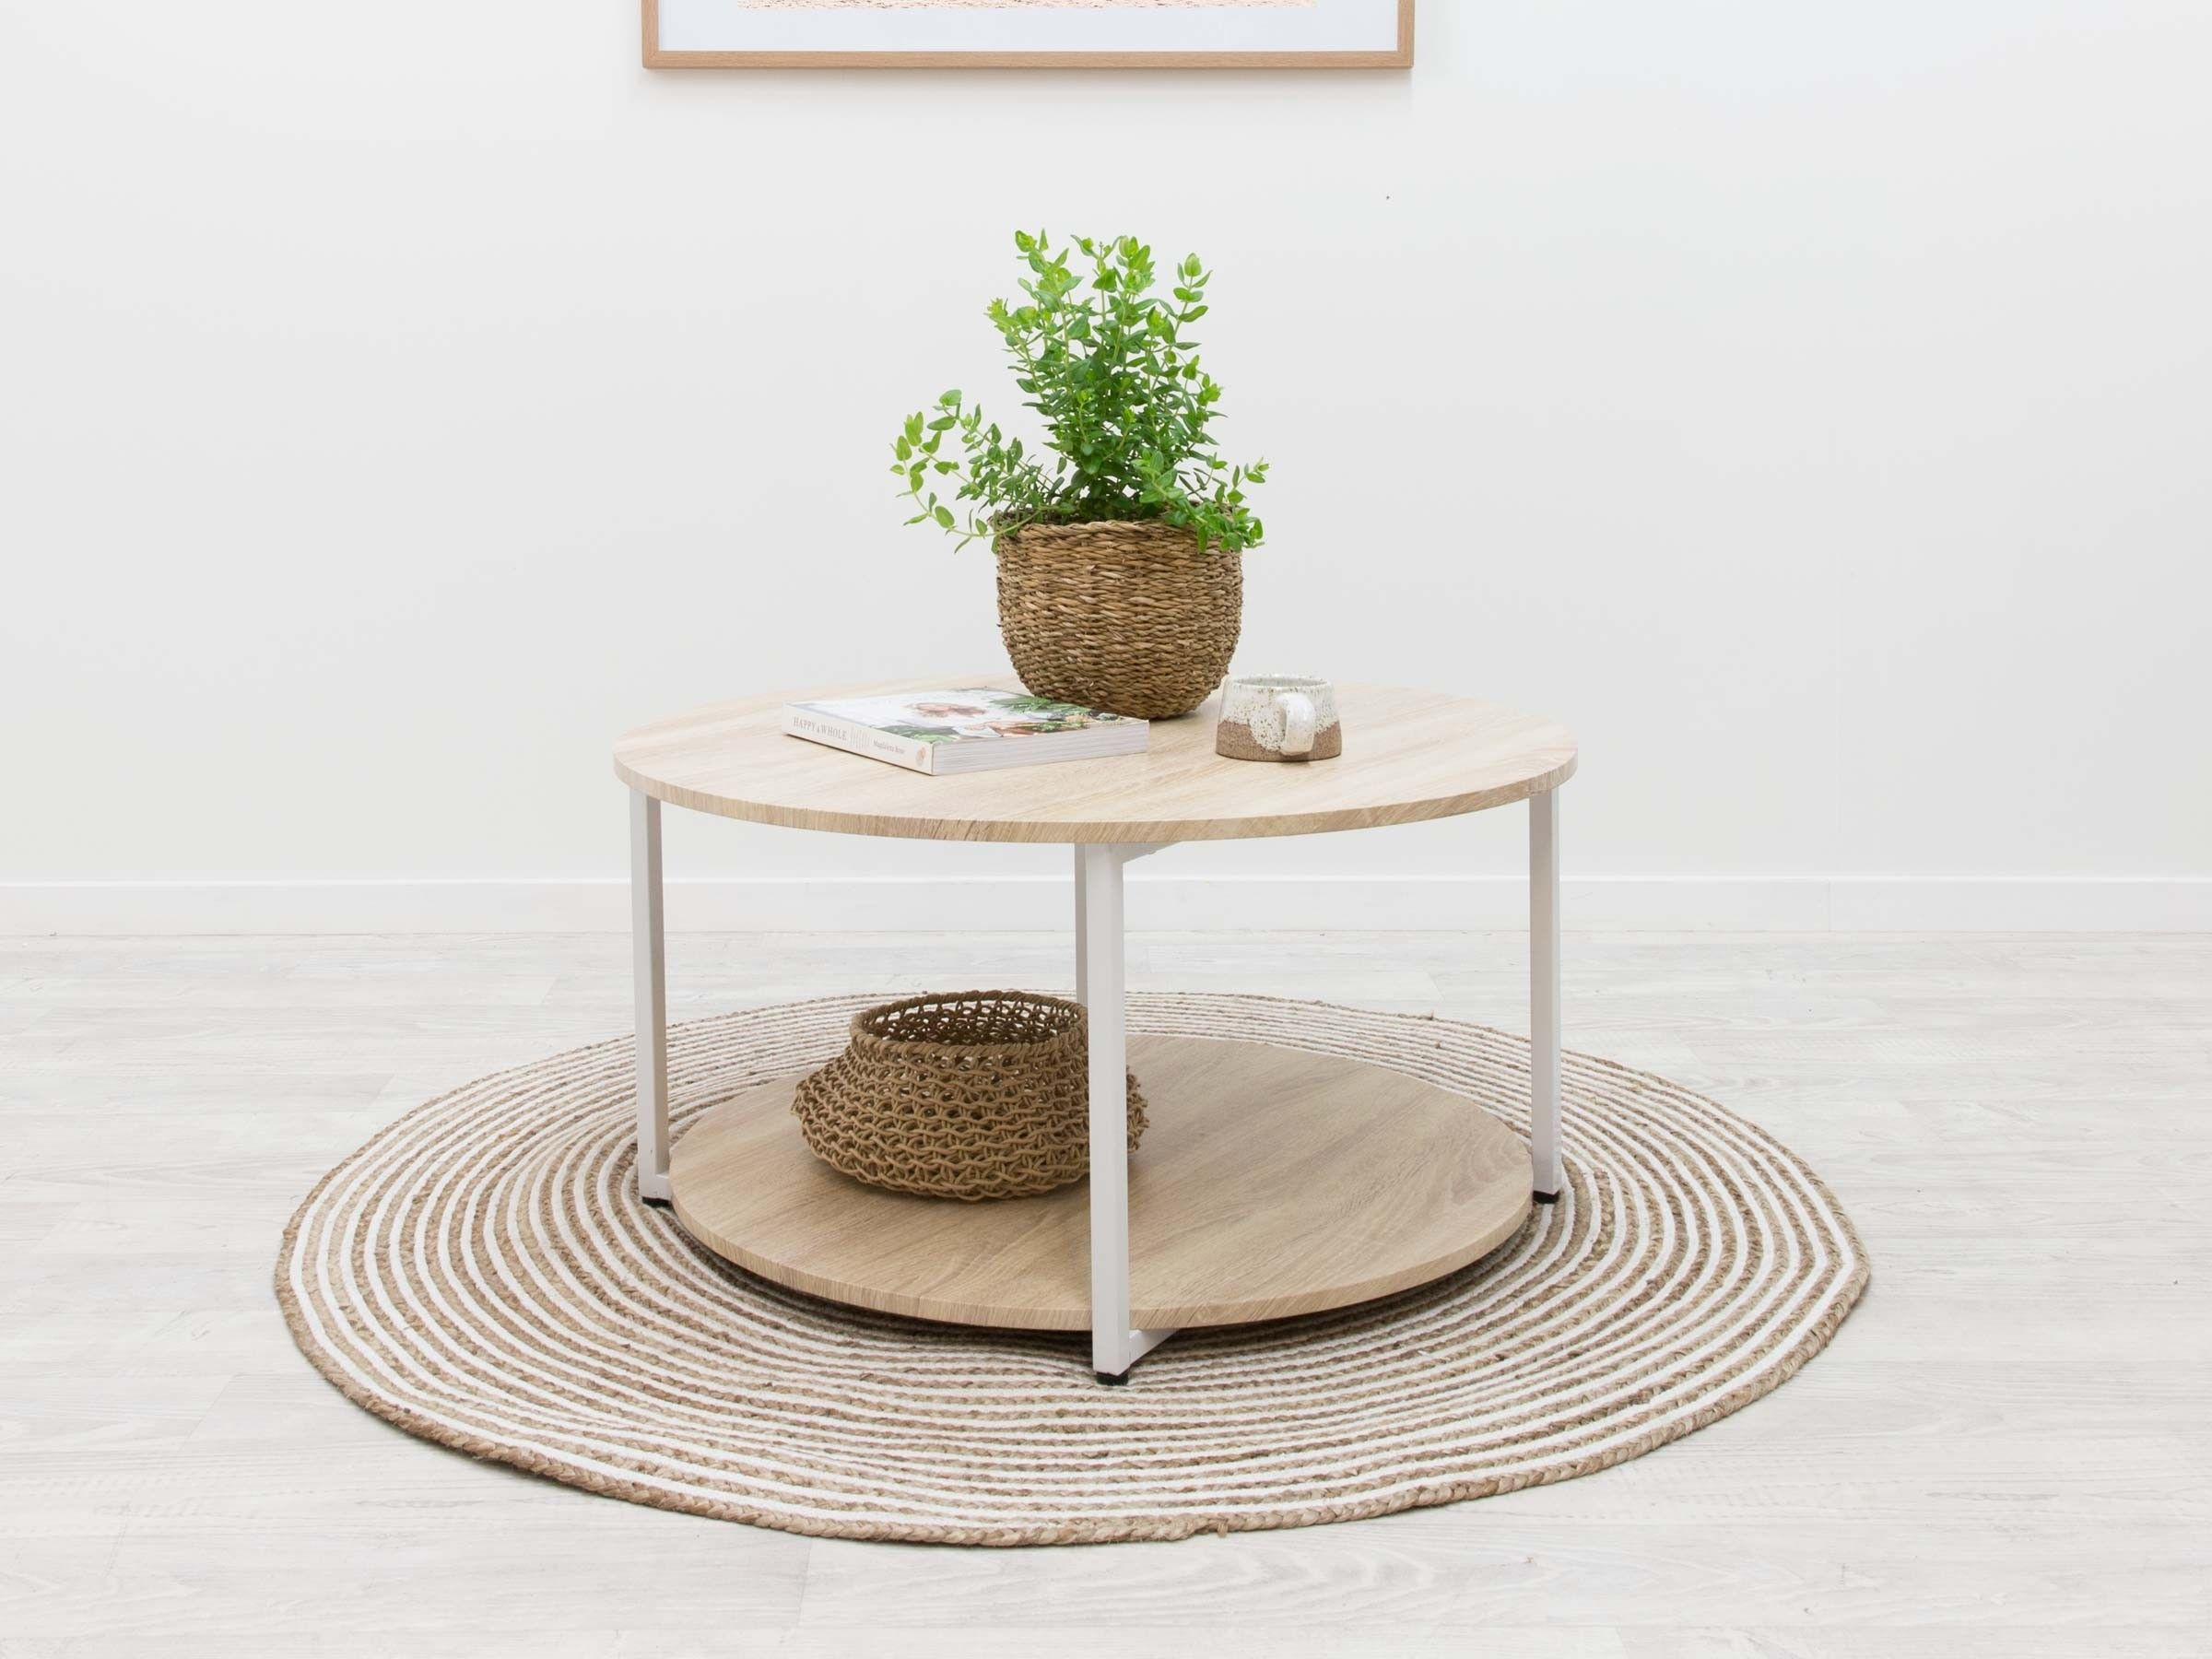 Pin By Kailey Walsh On Lounge Room Coffee Table Circular Coffee Table Coffee Table White [ 1800 x 2400 Pixel ]